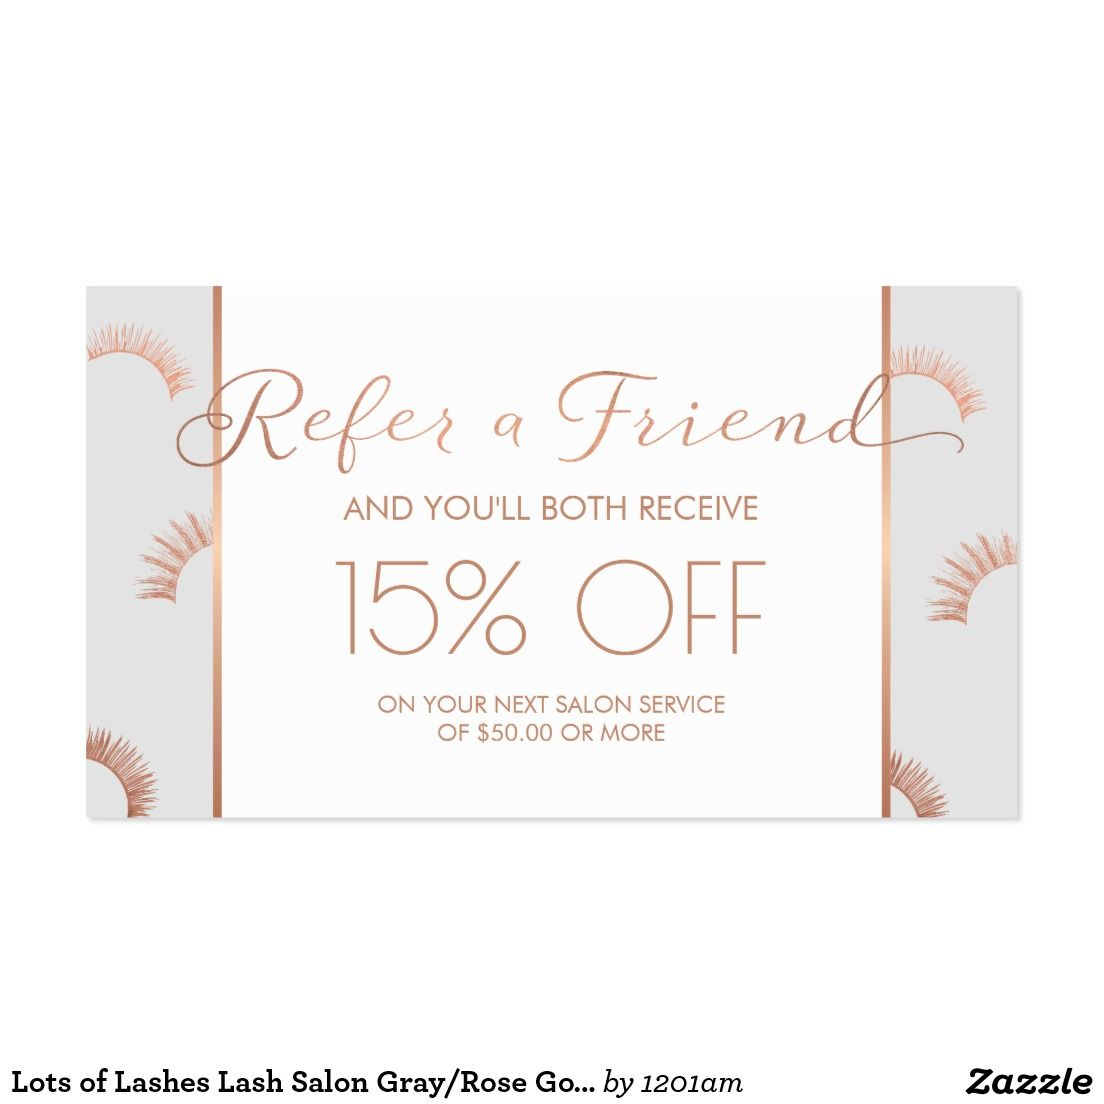 Lots of Lashes Lash Salon Gray/Rose Gold Referral Business Card ...